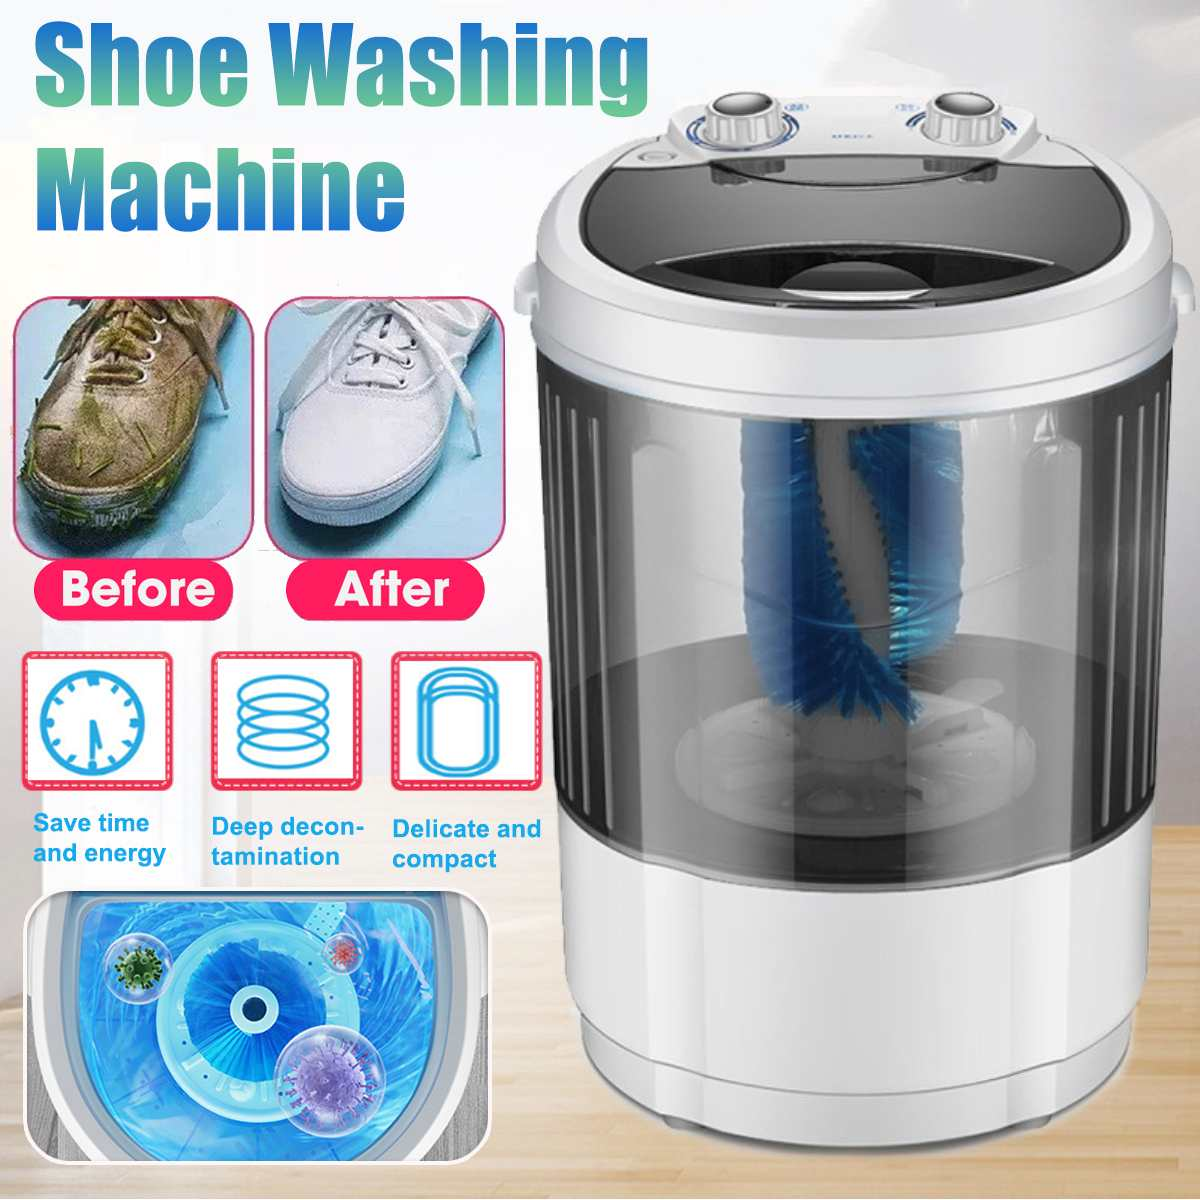 4.5kg Portable Shoes Washing Machine Household Single Tube Washer and Dryer Machine for Shoes UV bacteriostasis Shoes Cleaner image